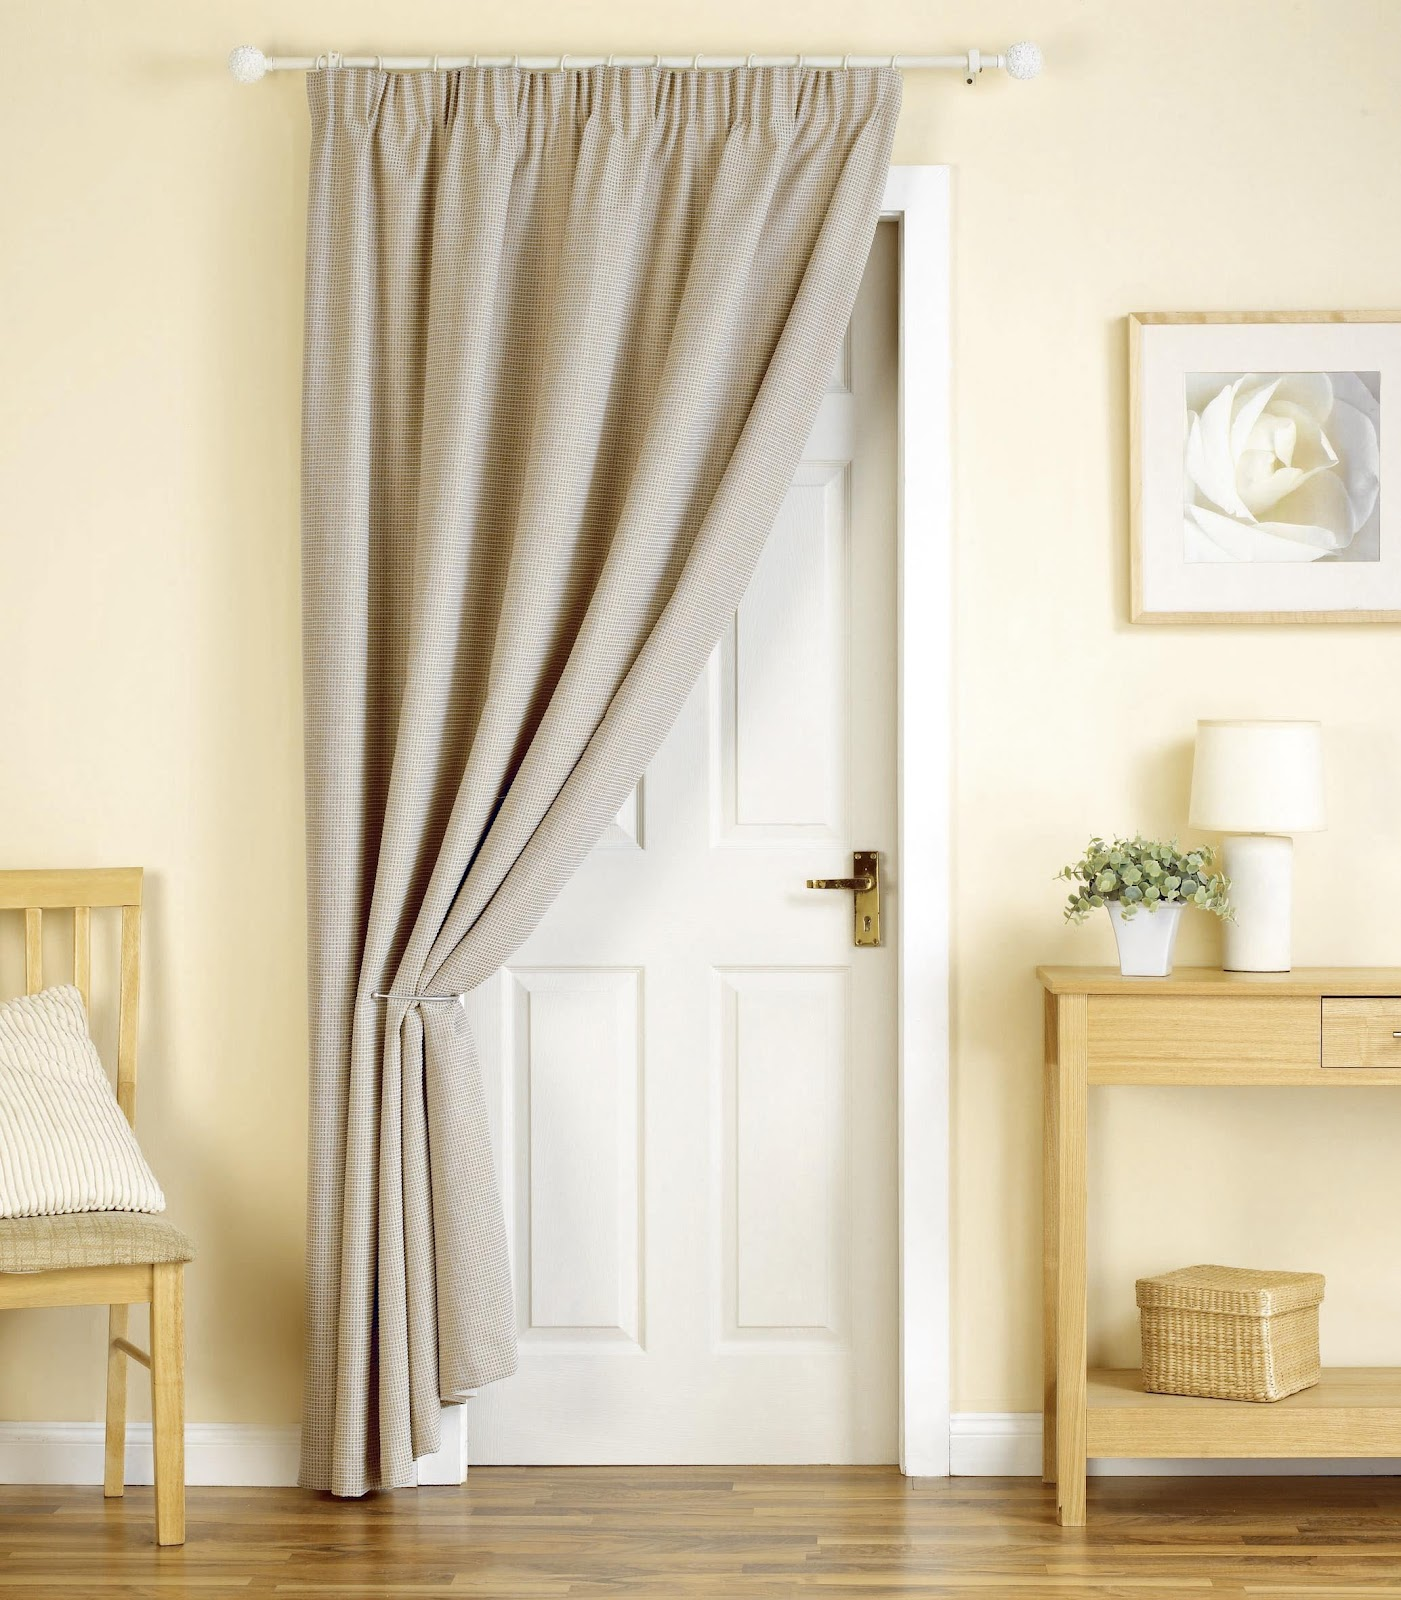 Kent Door Curtain Natural.jpg